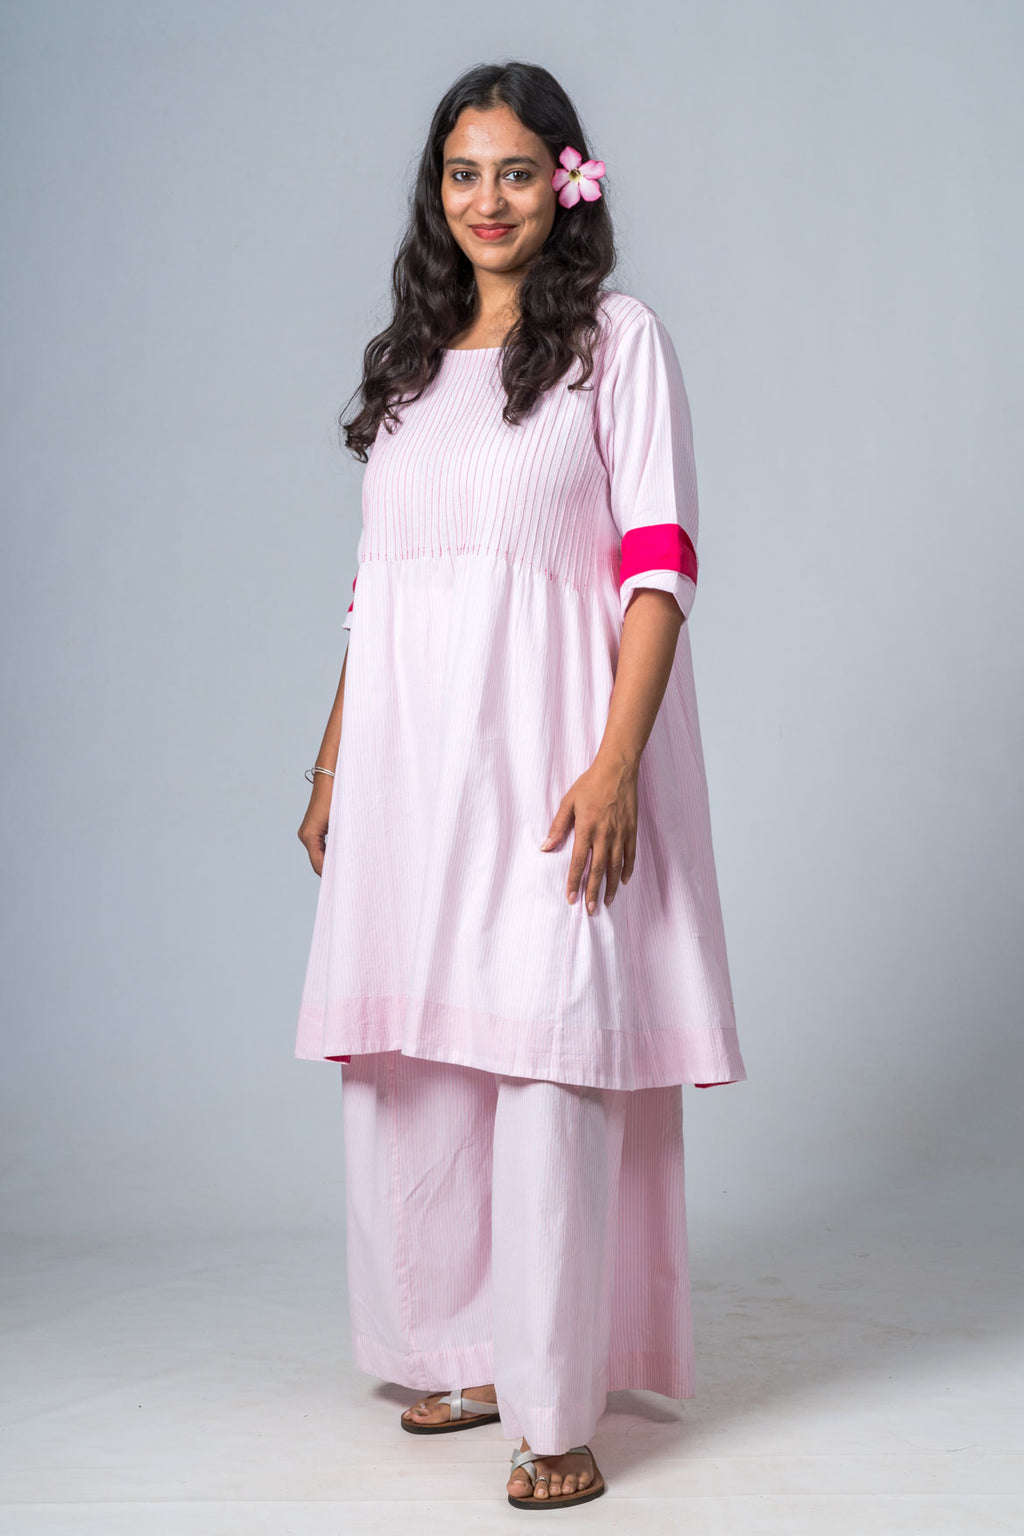 SERENE PINK ORGANIC COTTON STRIPED DRESS - Upasana Design Studio